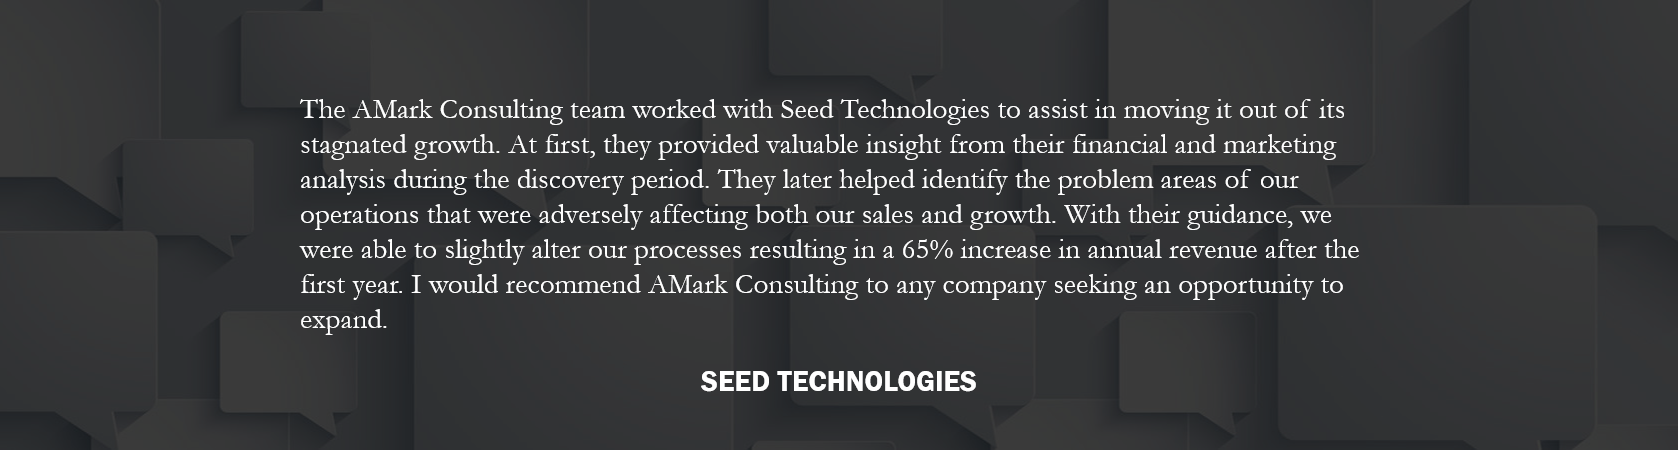 seed technologies.png